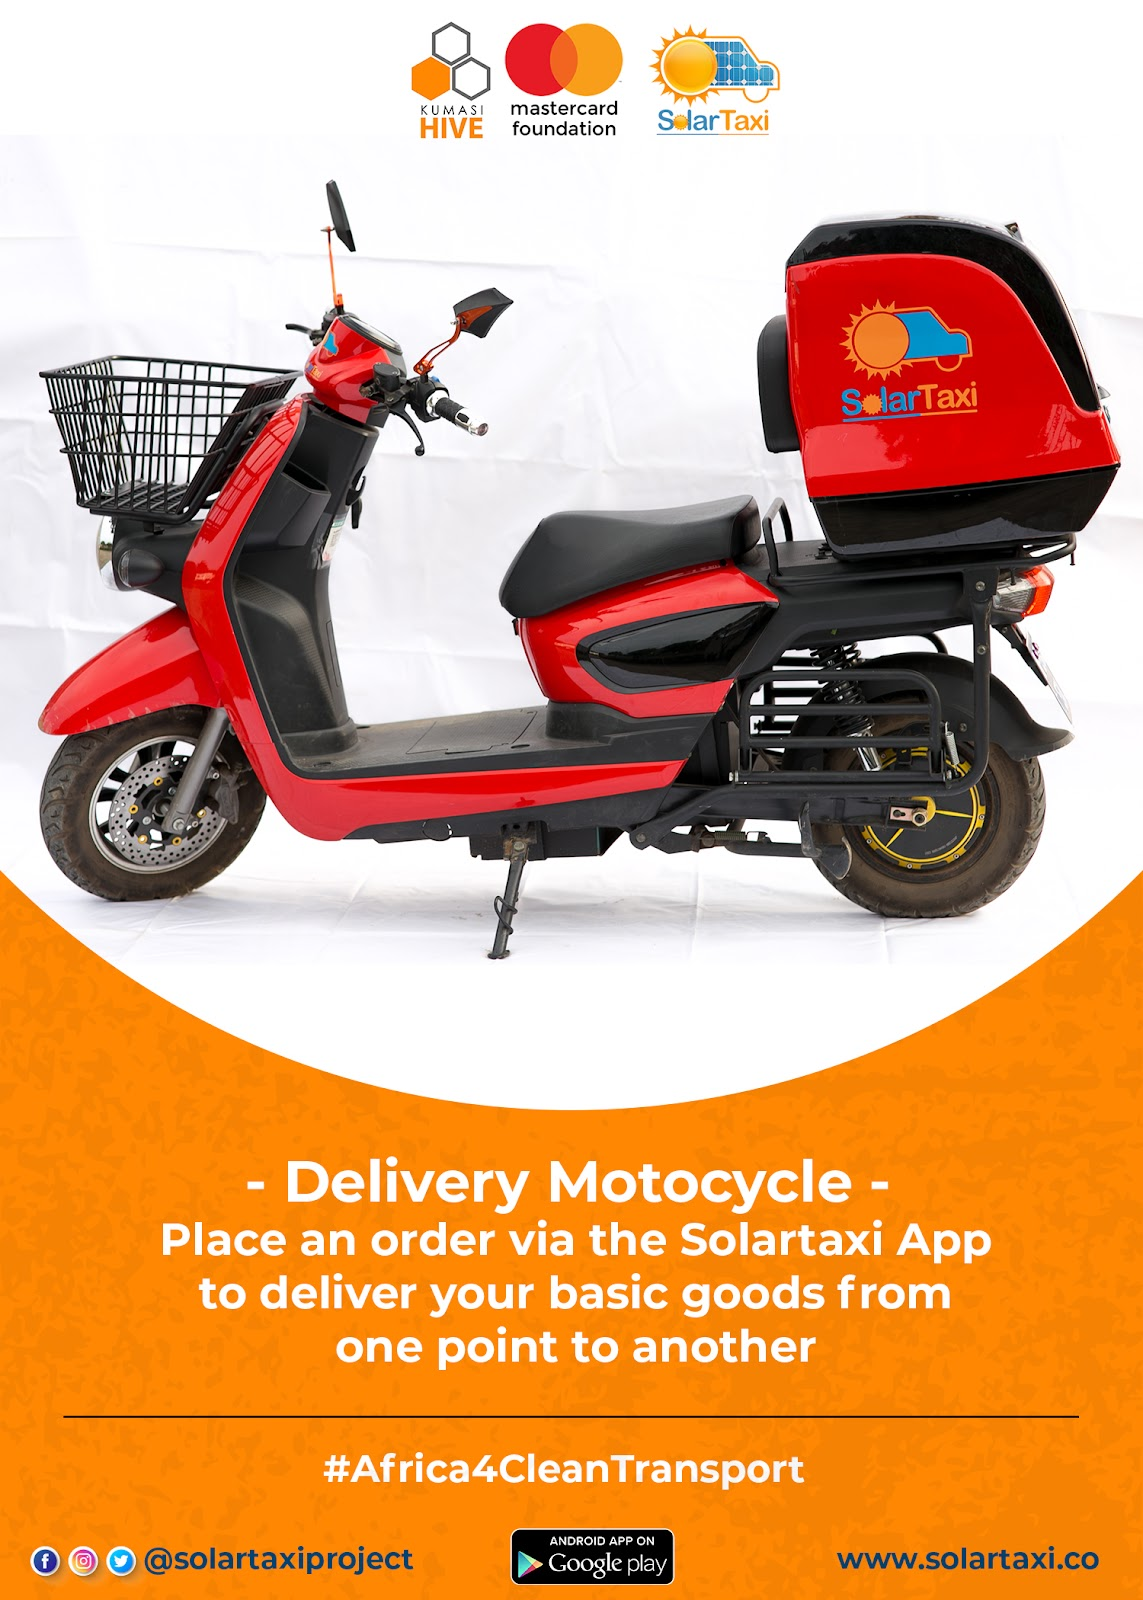 Kumasi Hive and Mastercard Foundation Delivery Motocycle image for SolarTaxi on gharage